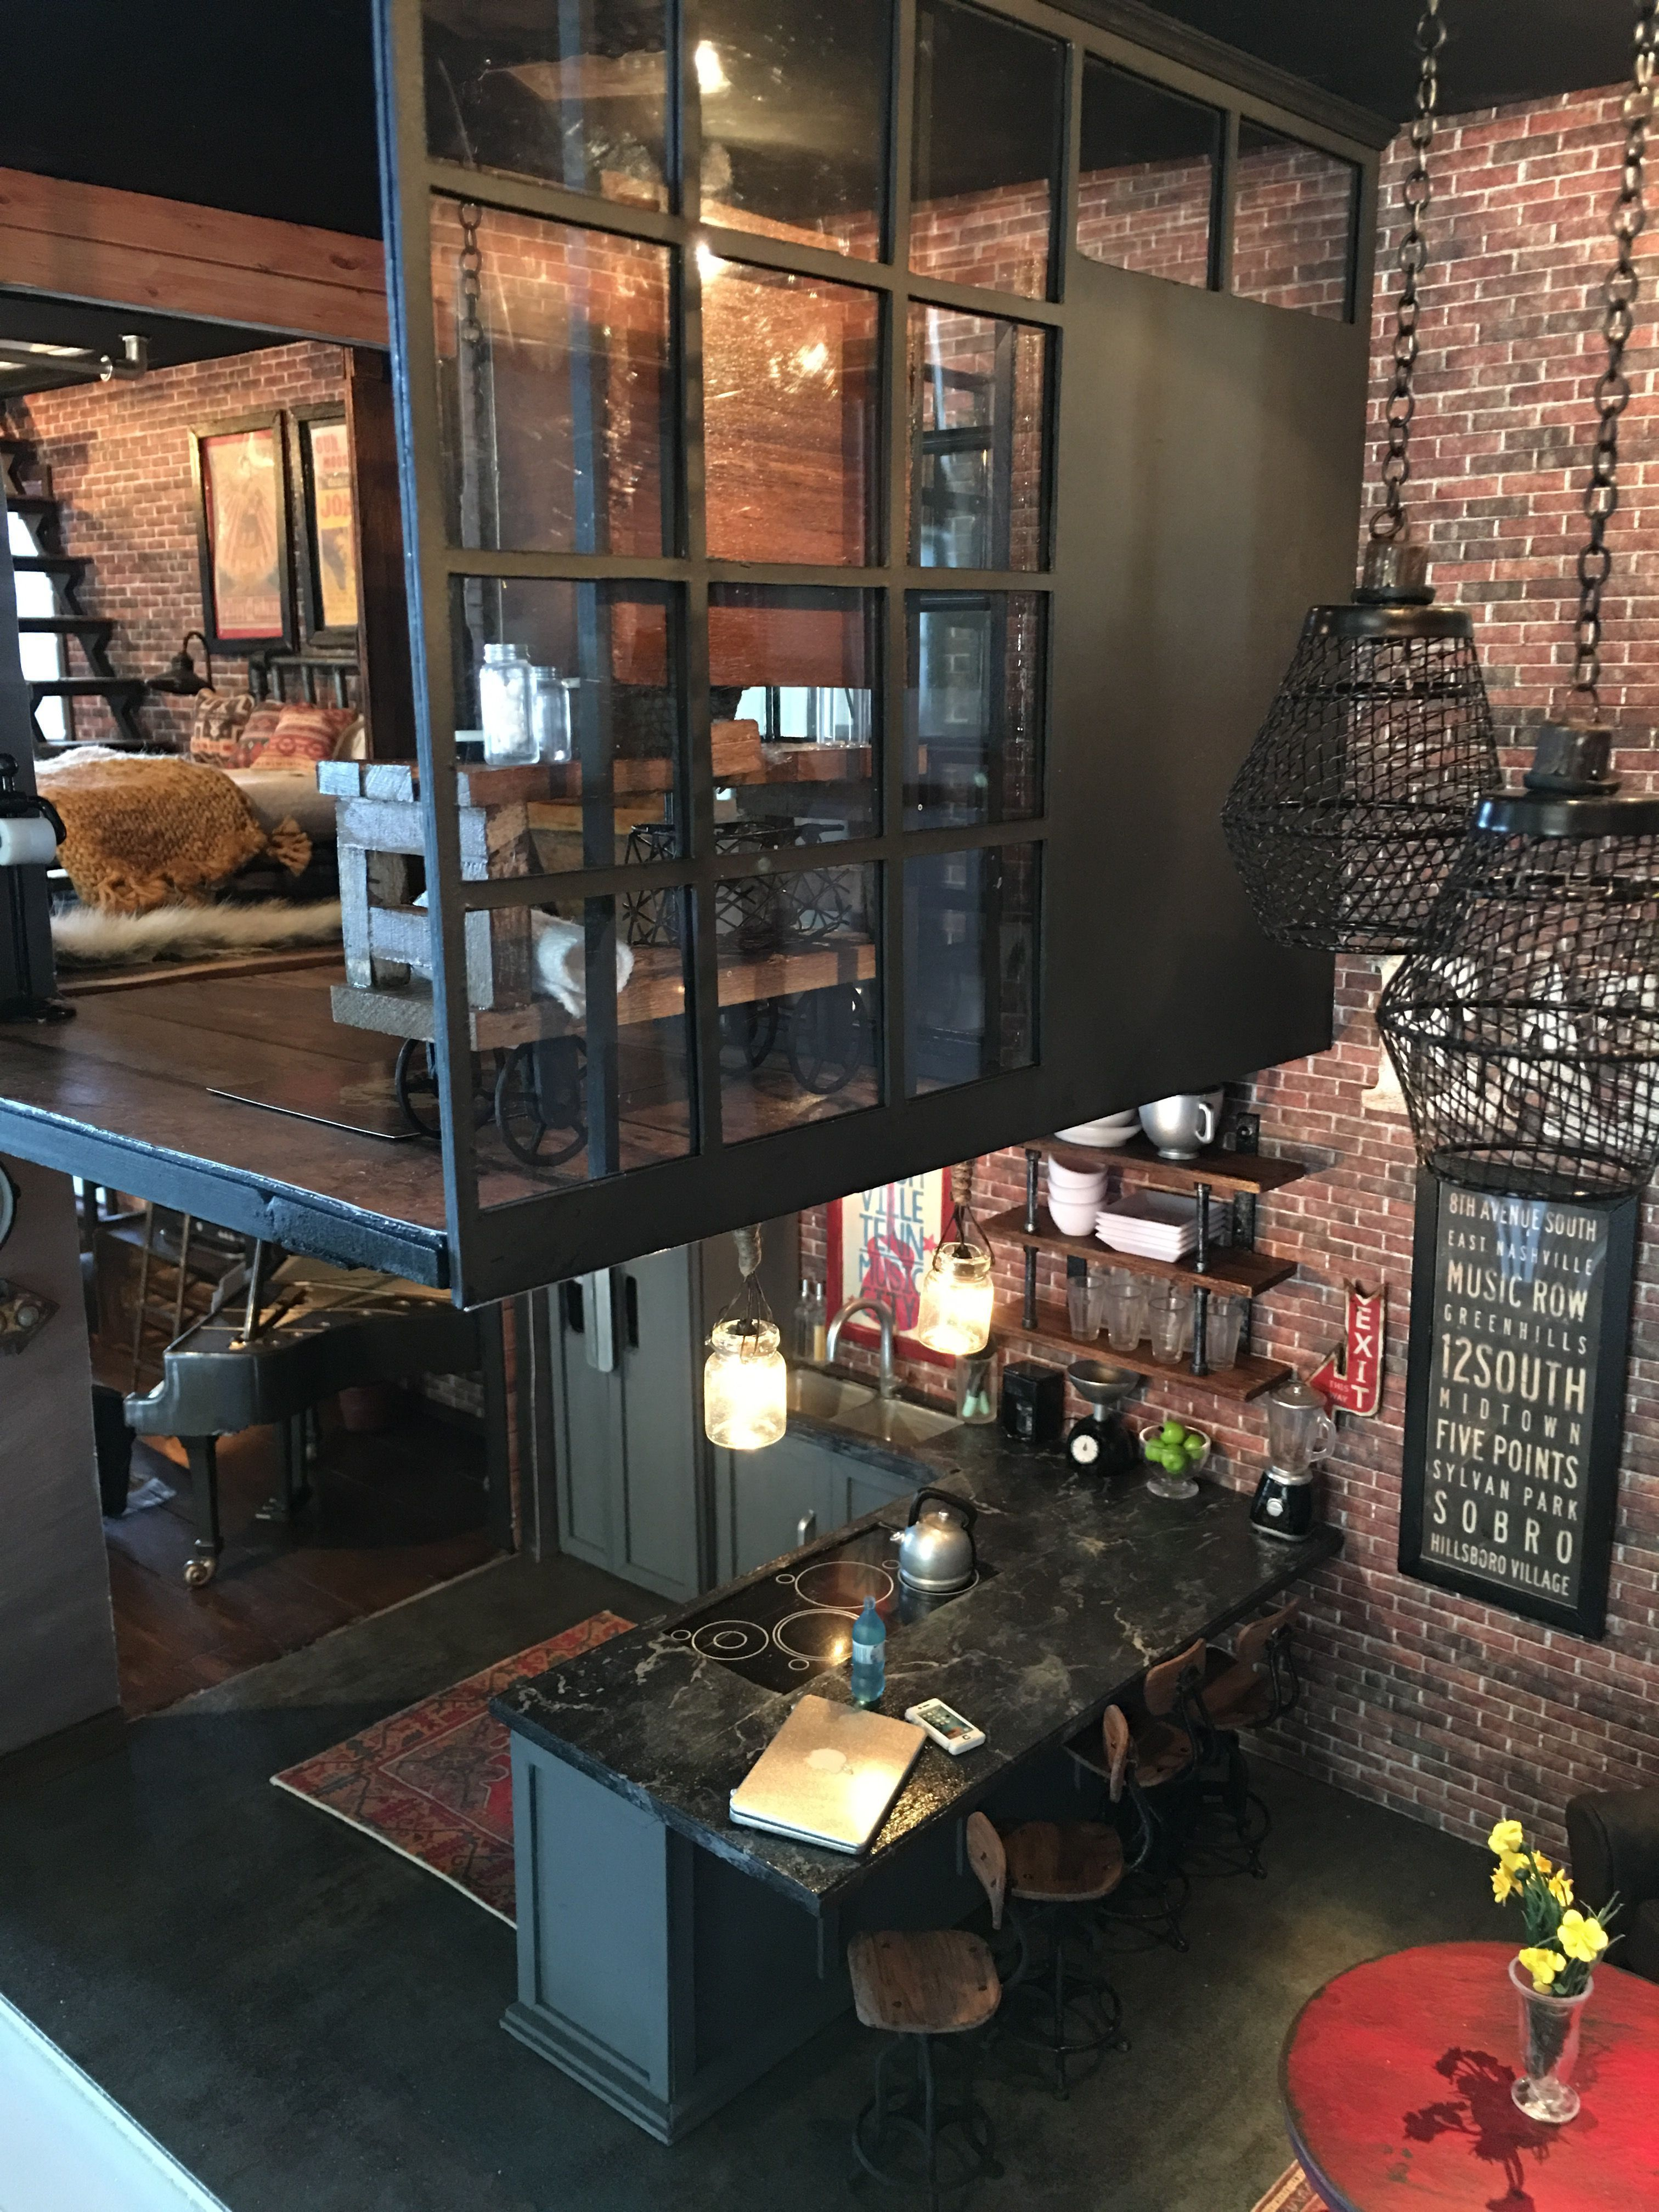 Vintage Industrial Design Ideas For Your Loft #barndominiumideasfloorplans We know this theme has been a little bit left out, but we want to make it u... - Mary's Secret World